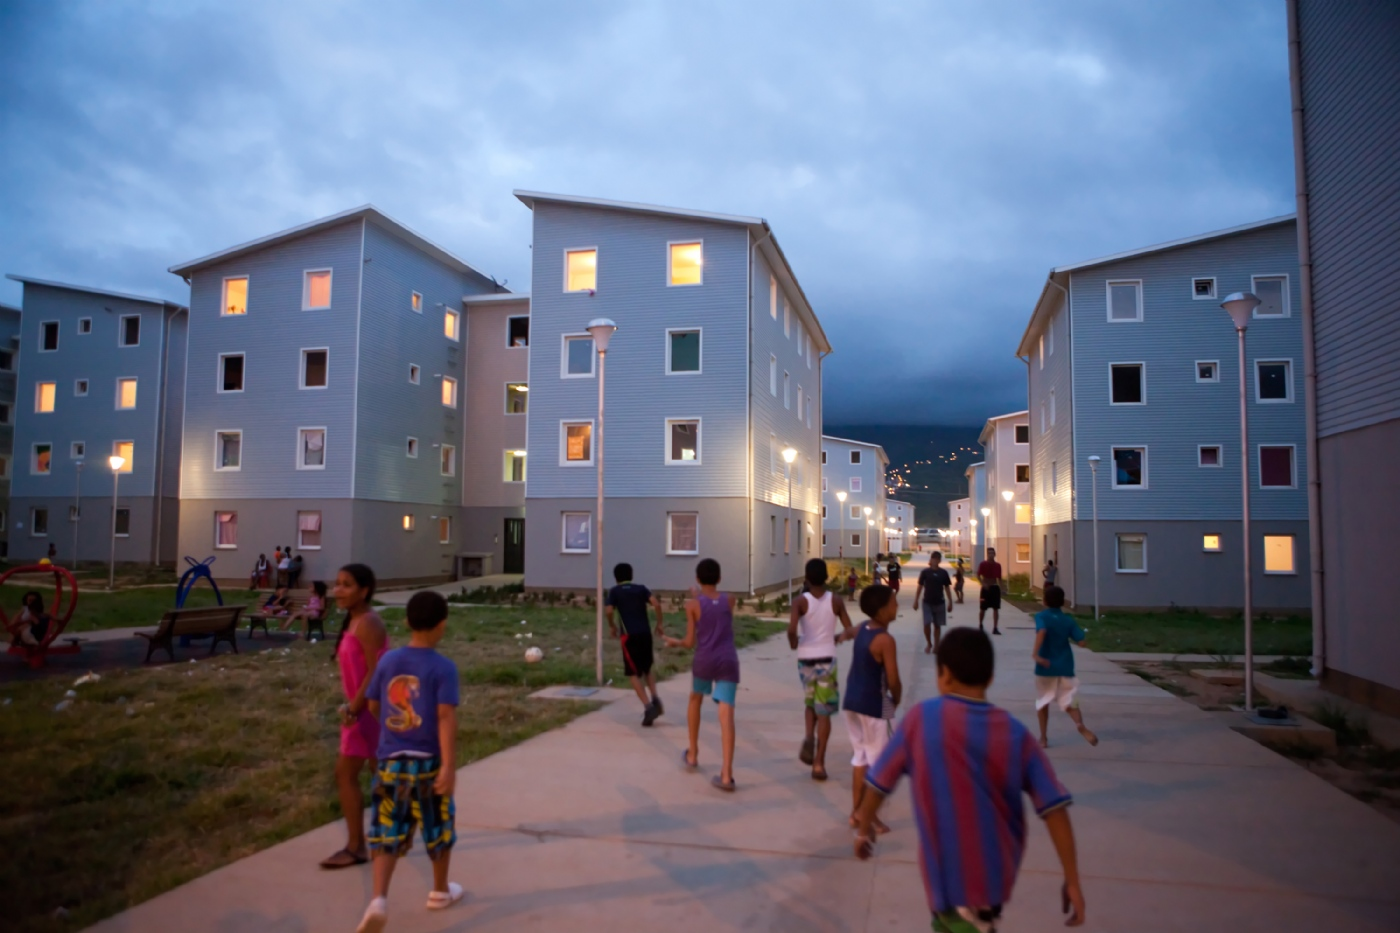 VARGAS SOCIAL HOUSING PROJECT